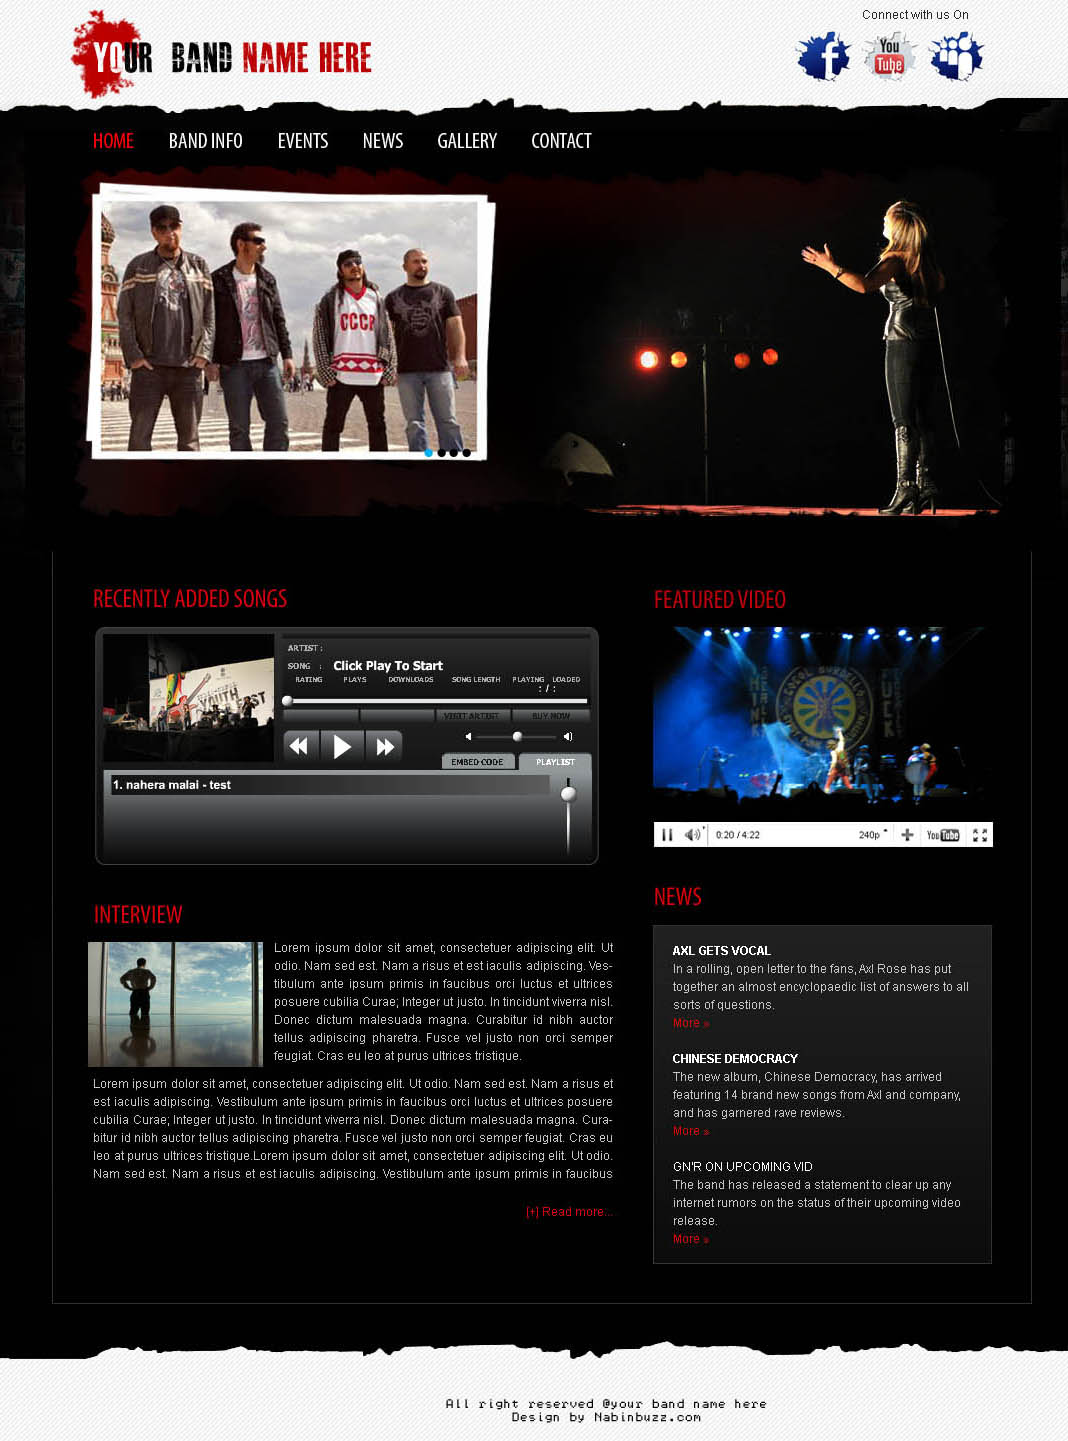 Musical band web template psd download by crazeeartist on deviantart musical band web template psd download by crazeeartist pronofoot35fo Choice Image